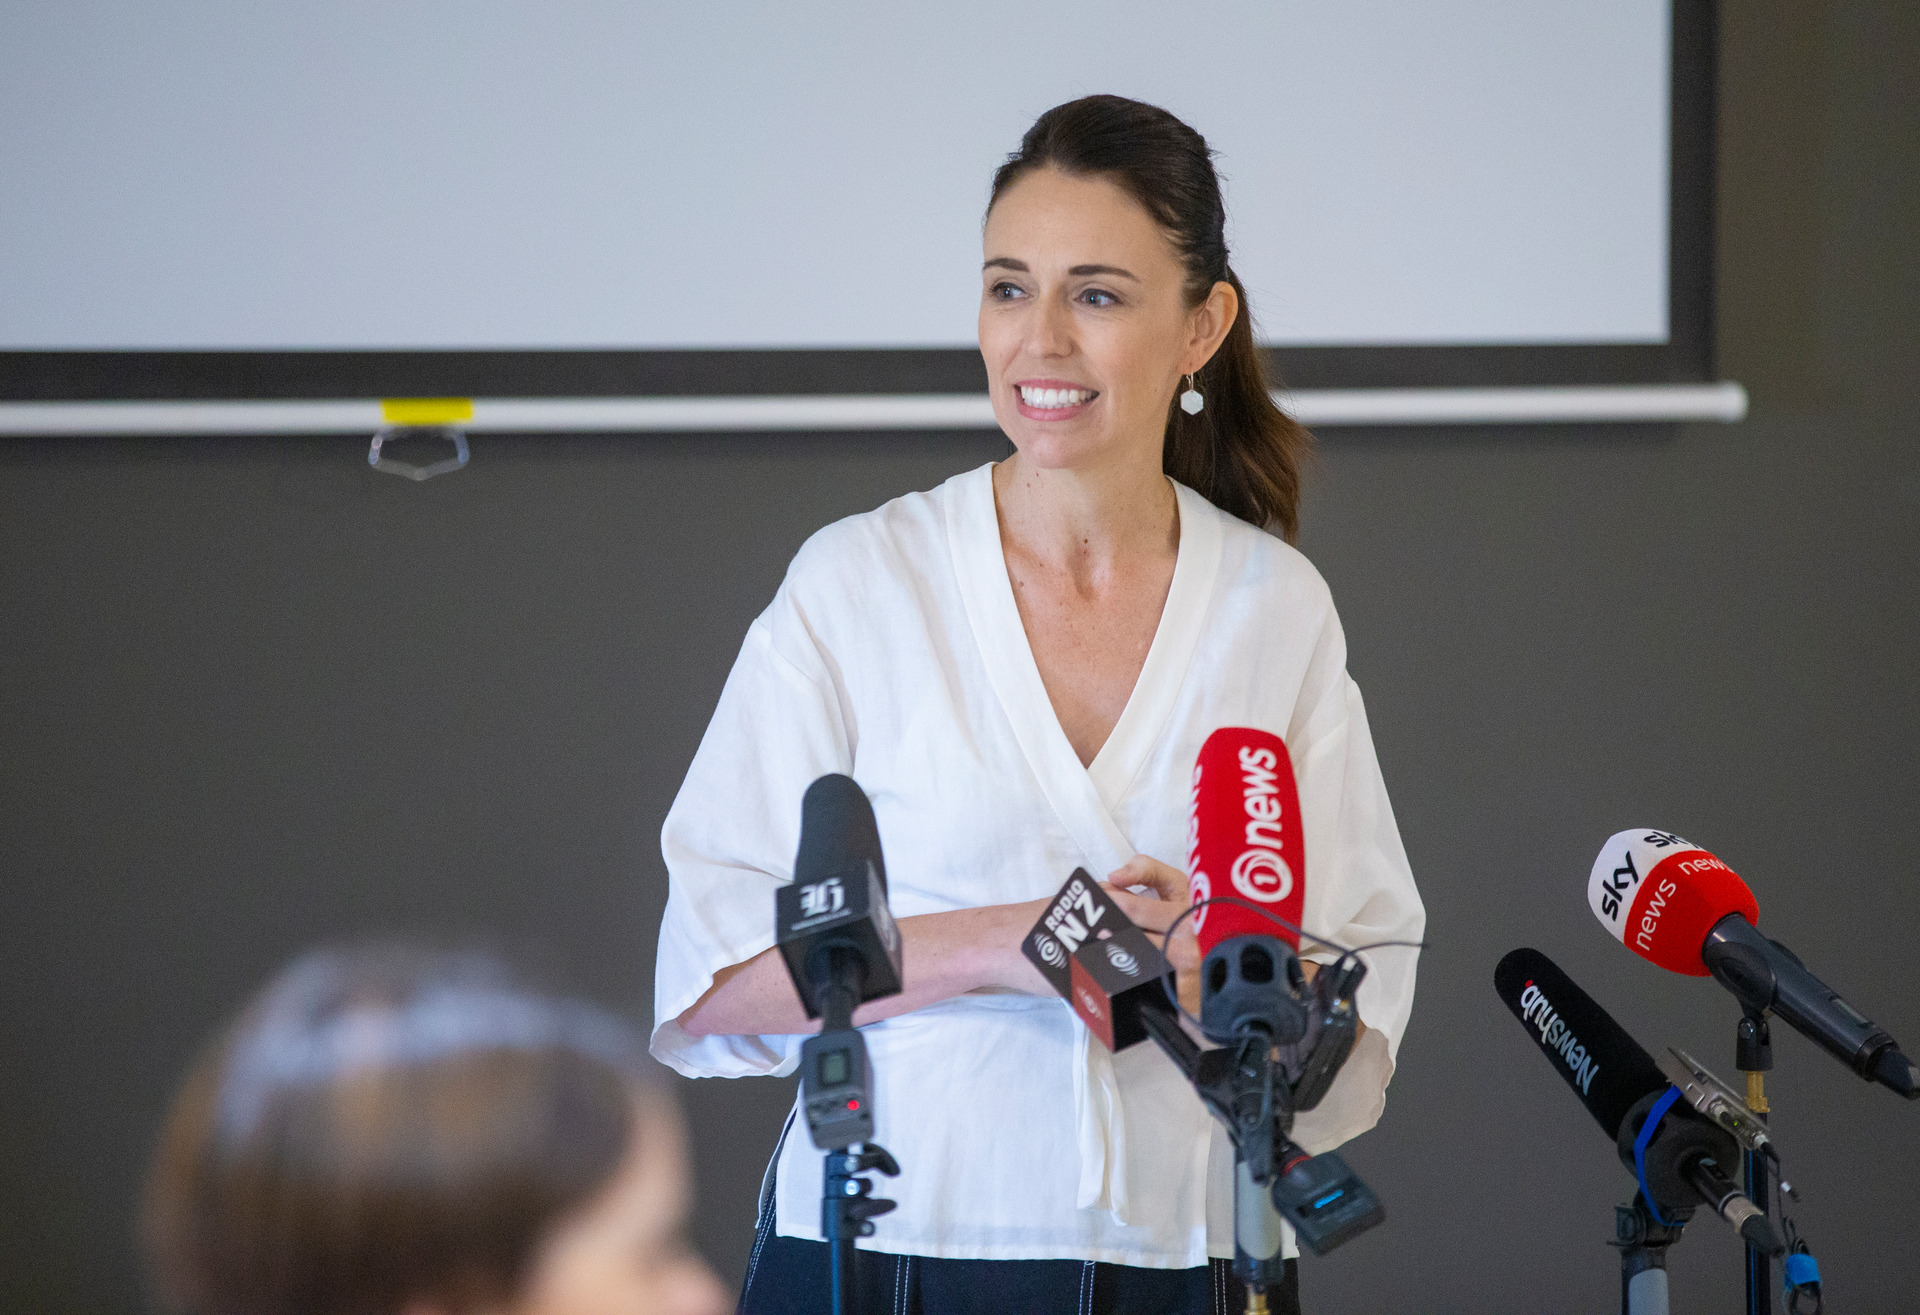 Mike Hosking: Ardern needs to deliver more than spin